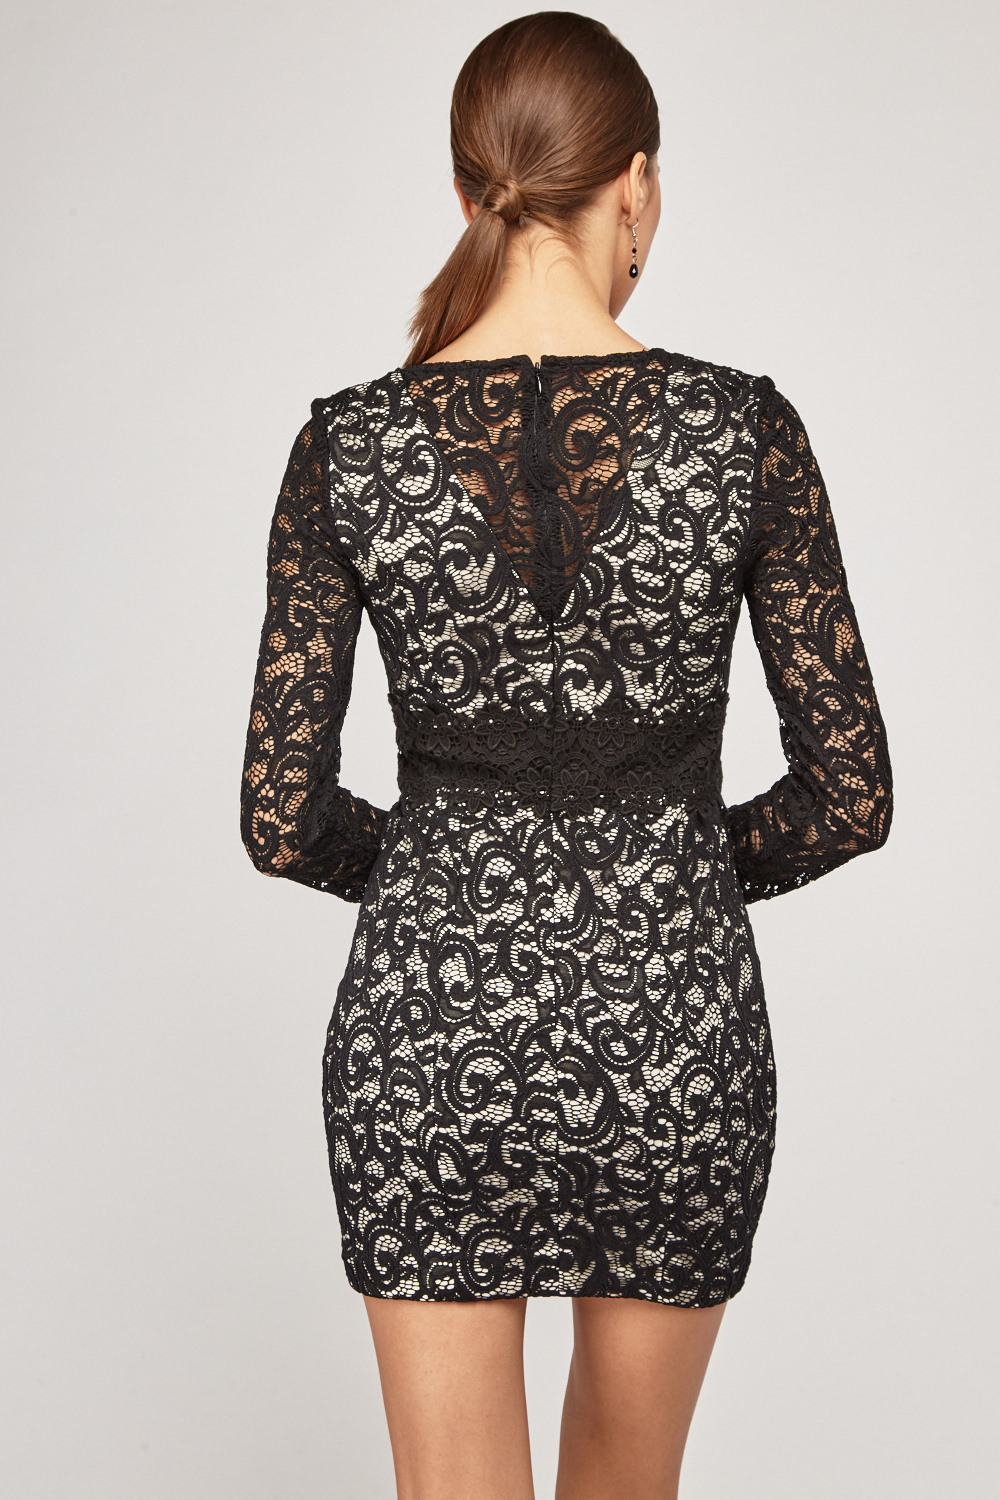 Fisher boys lace overlay bodycon dress order catalogs